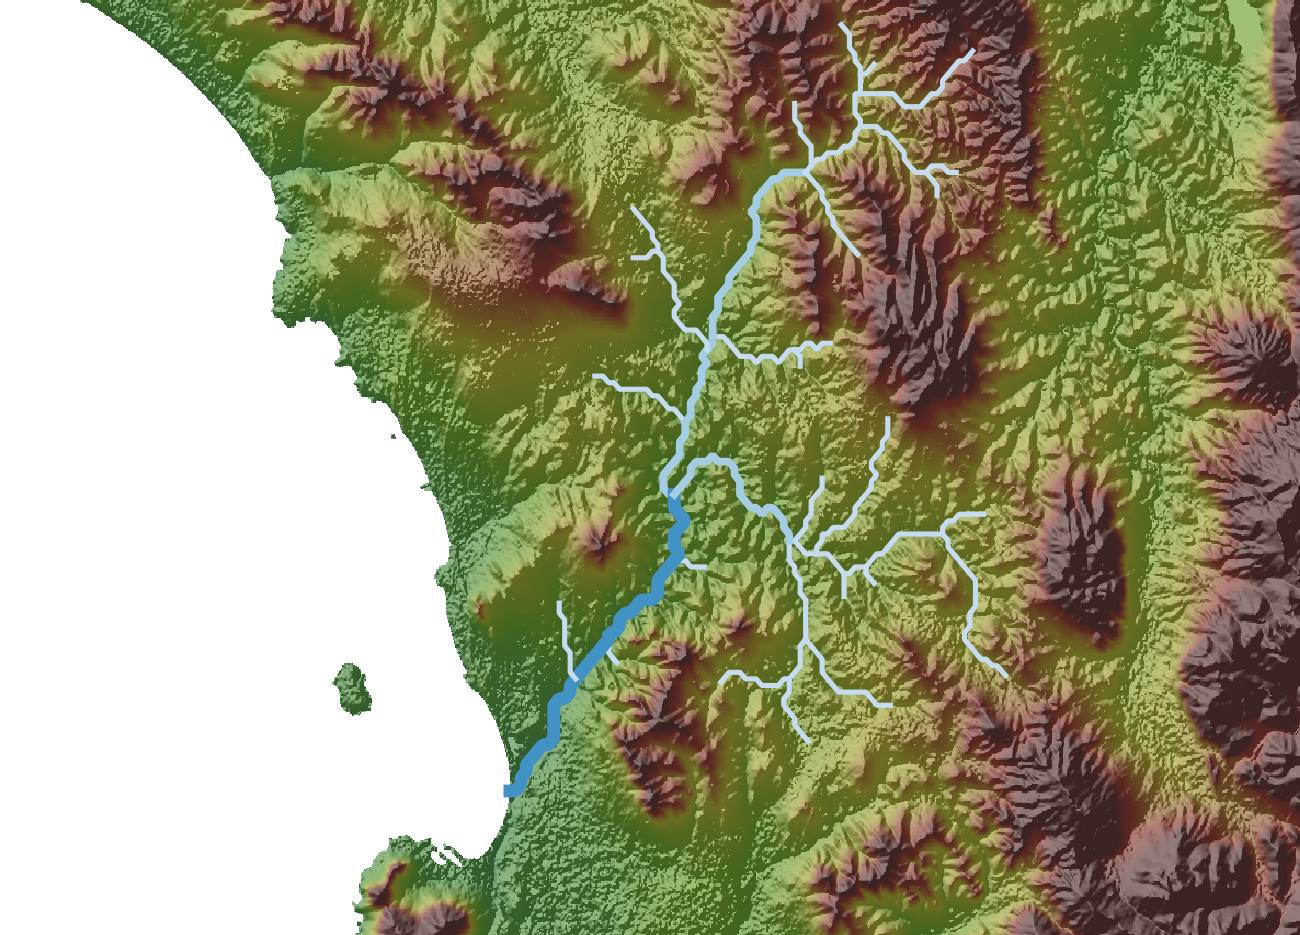 For example, here's our same river overlaid with the DEM elevation data.